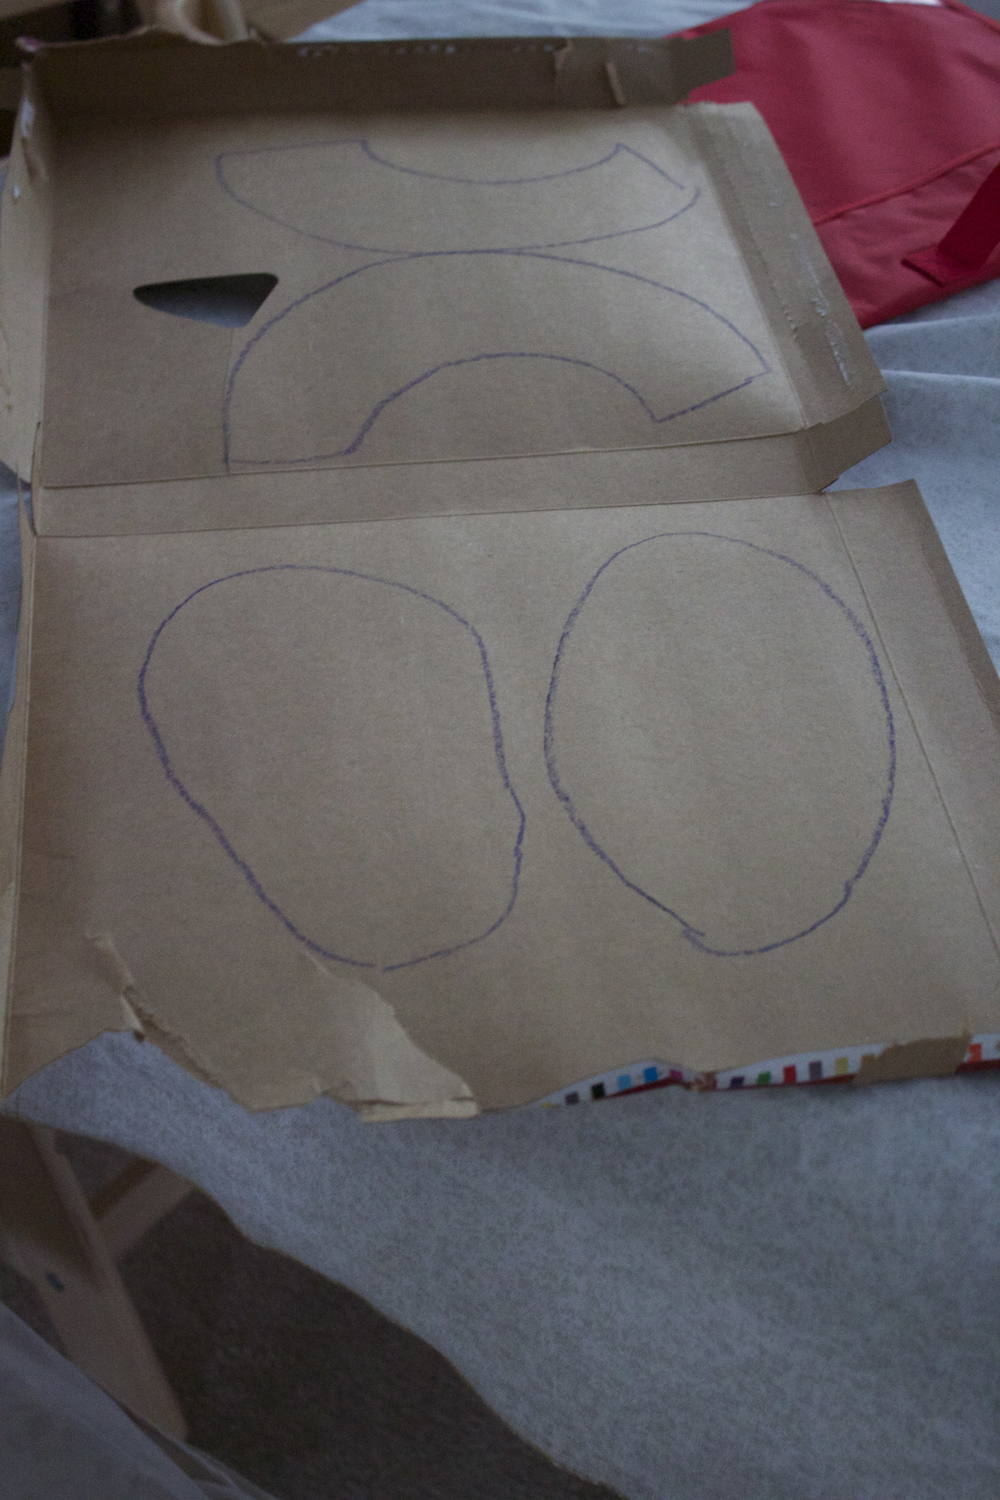 Outlines for top and bottom of the slippers